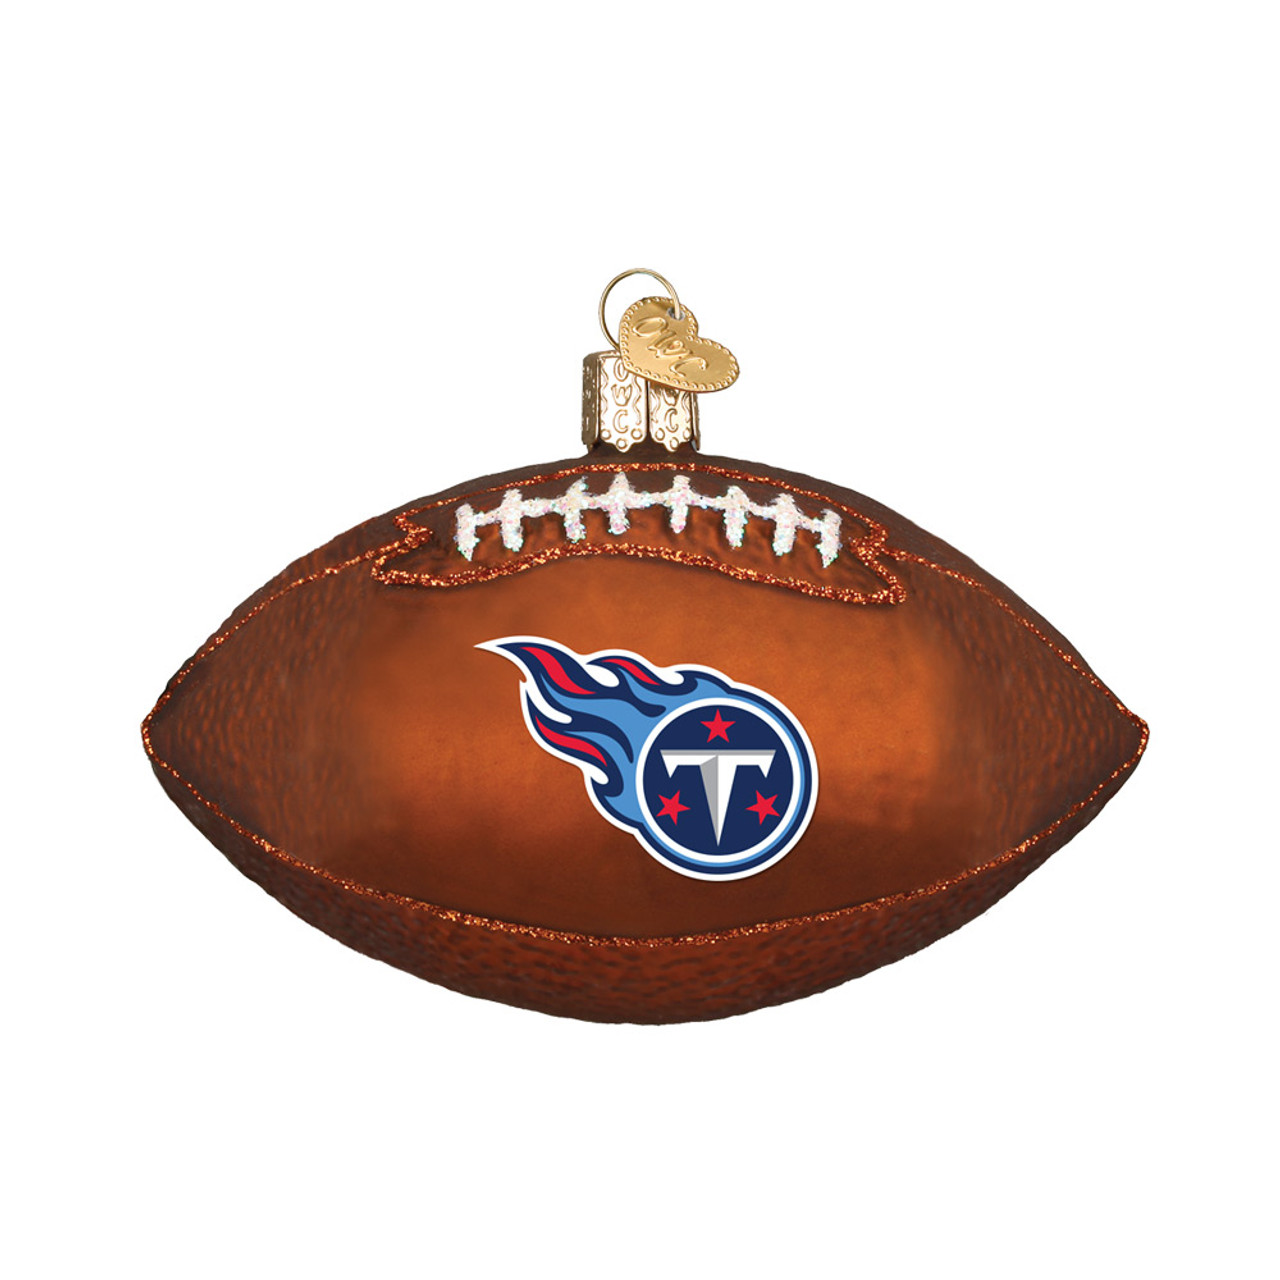 Tennessee Titans NFL Football Old World Christmas Glass Ornament b2241a8a7